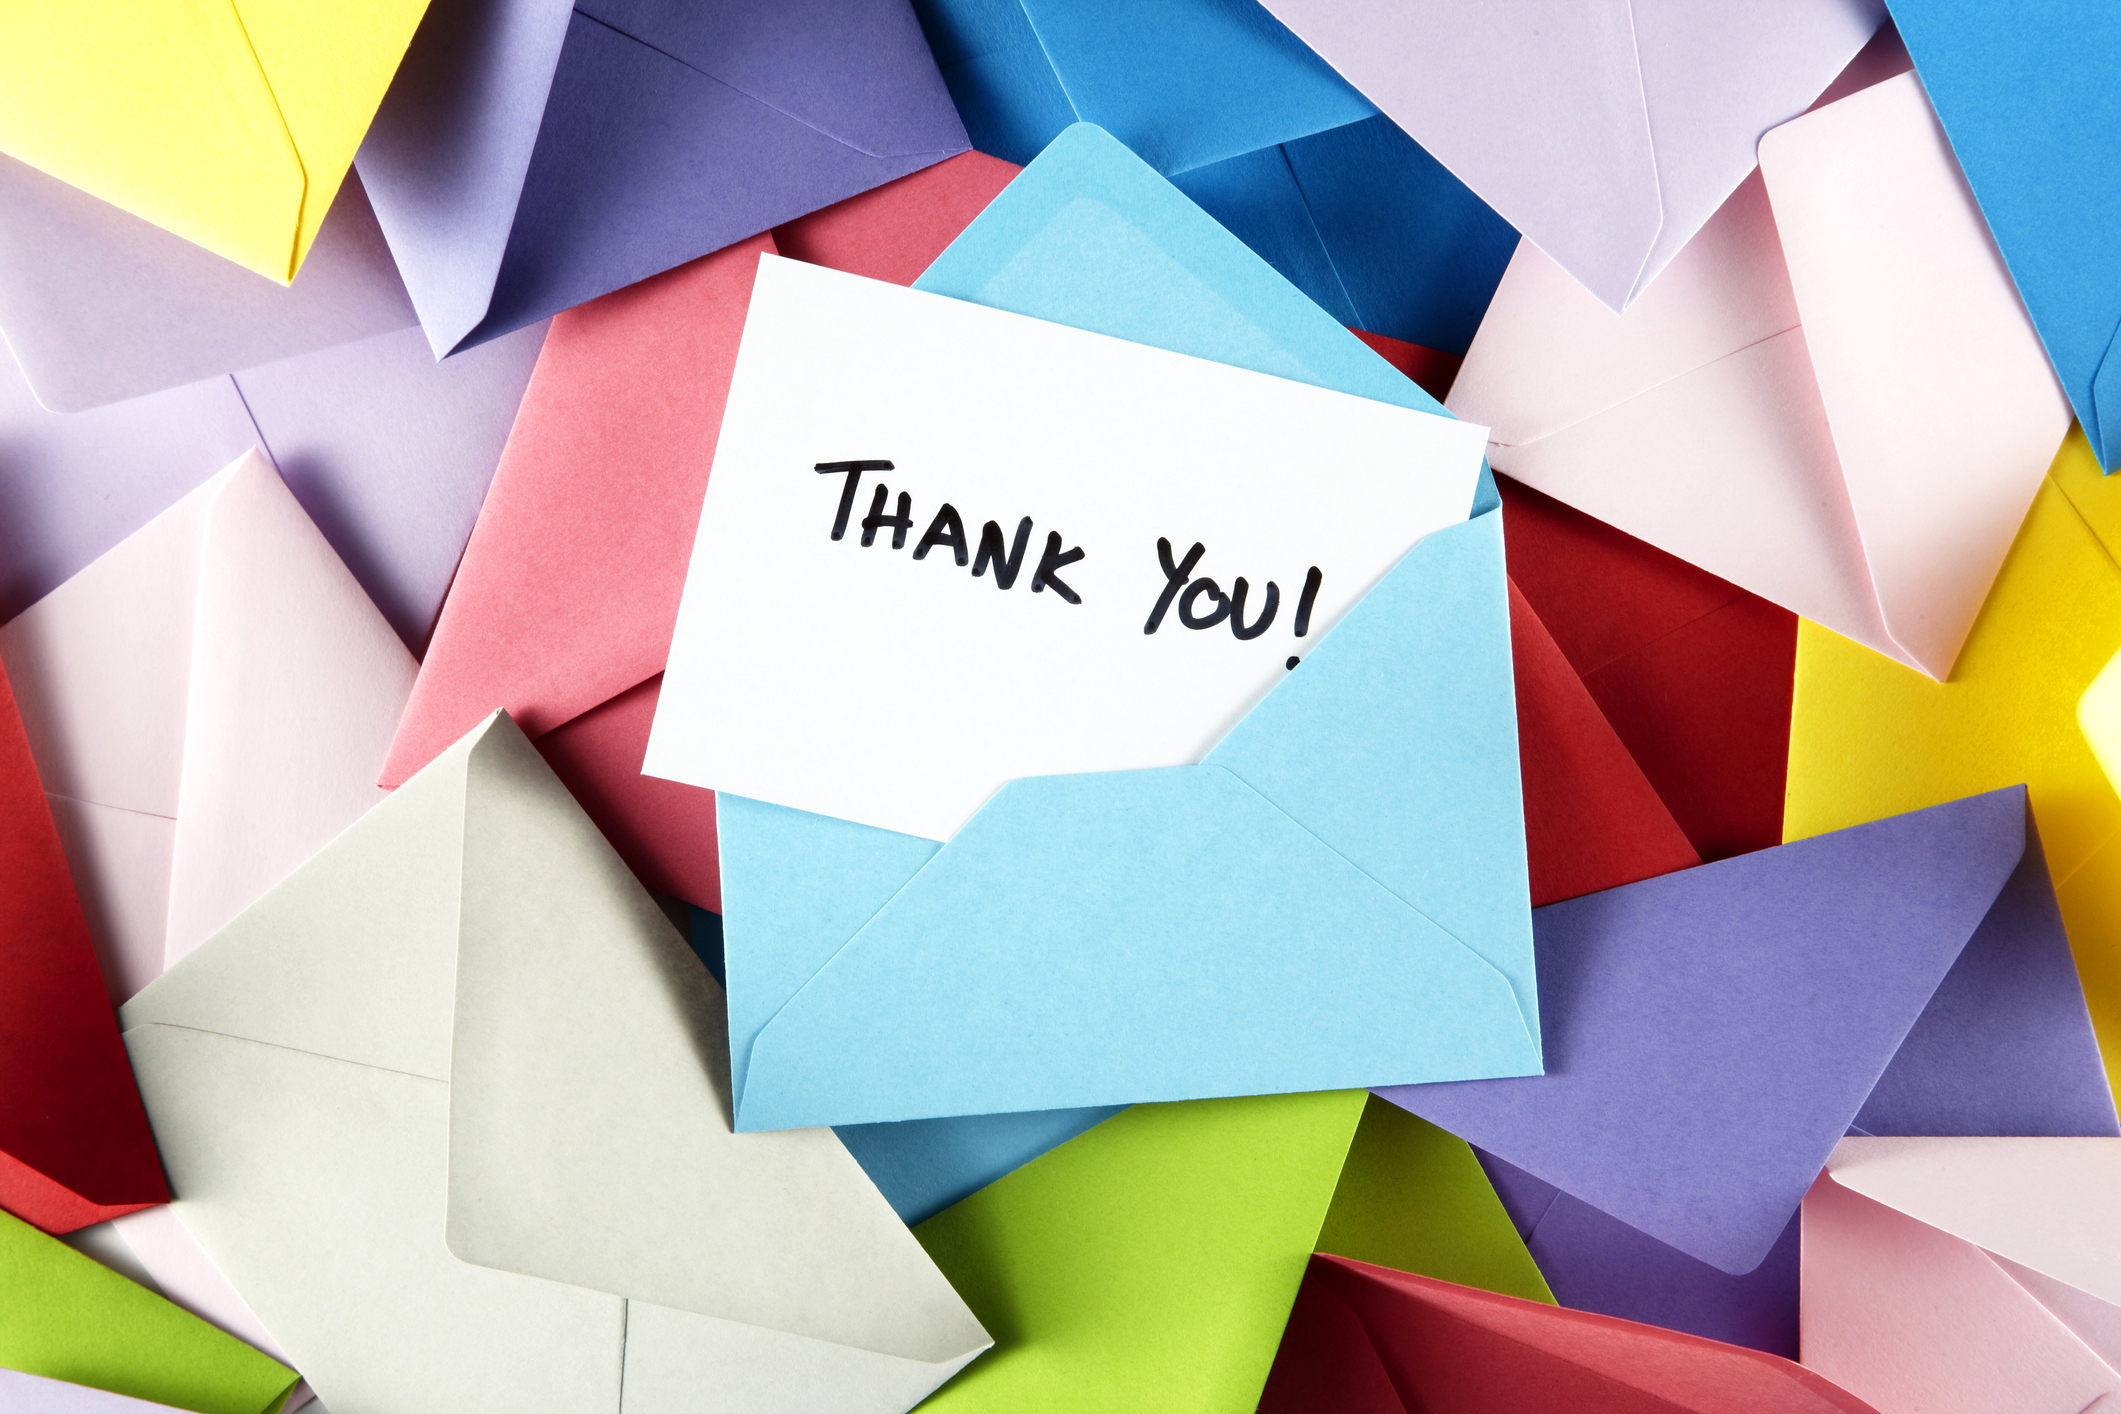 Mom Confession: I'm No Good at Thank-You Cards